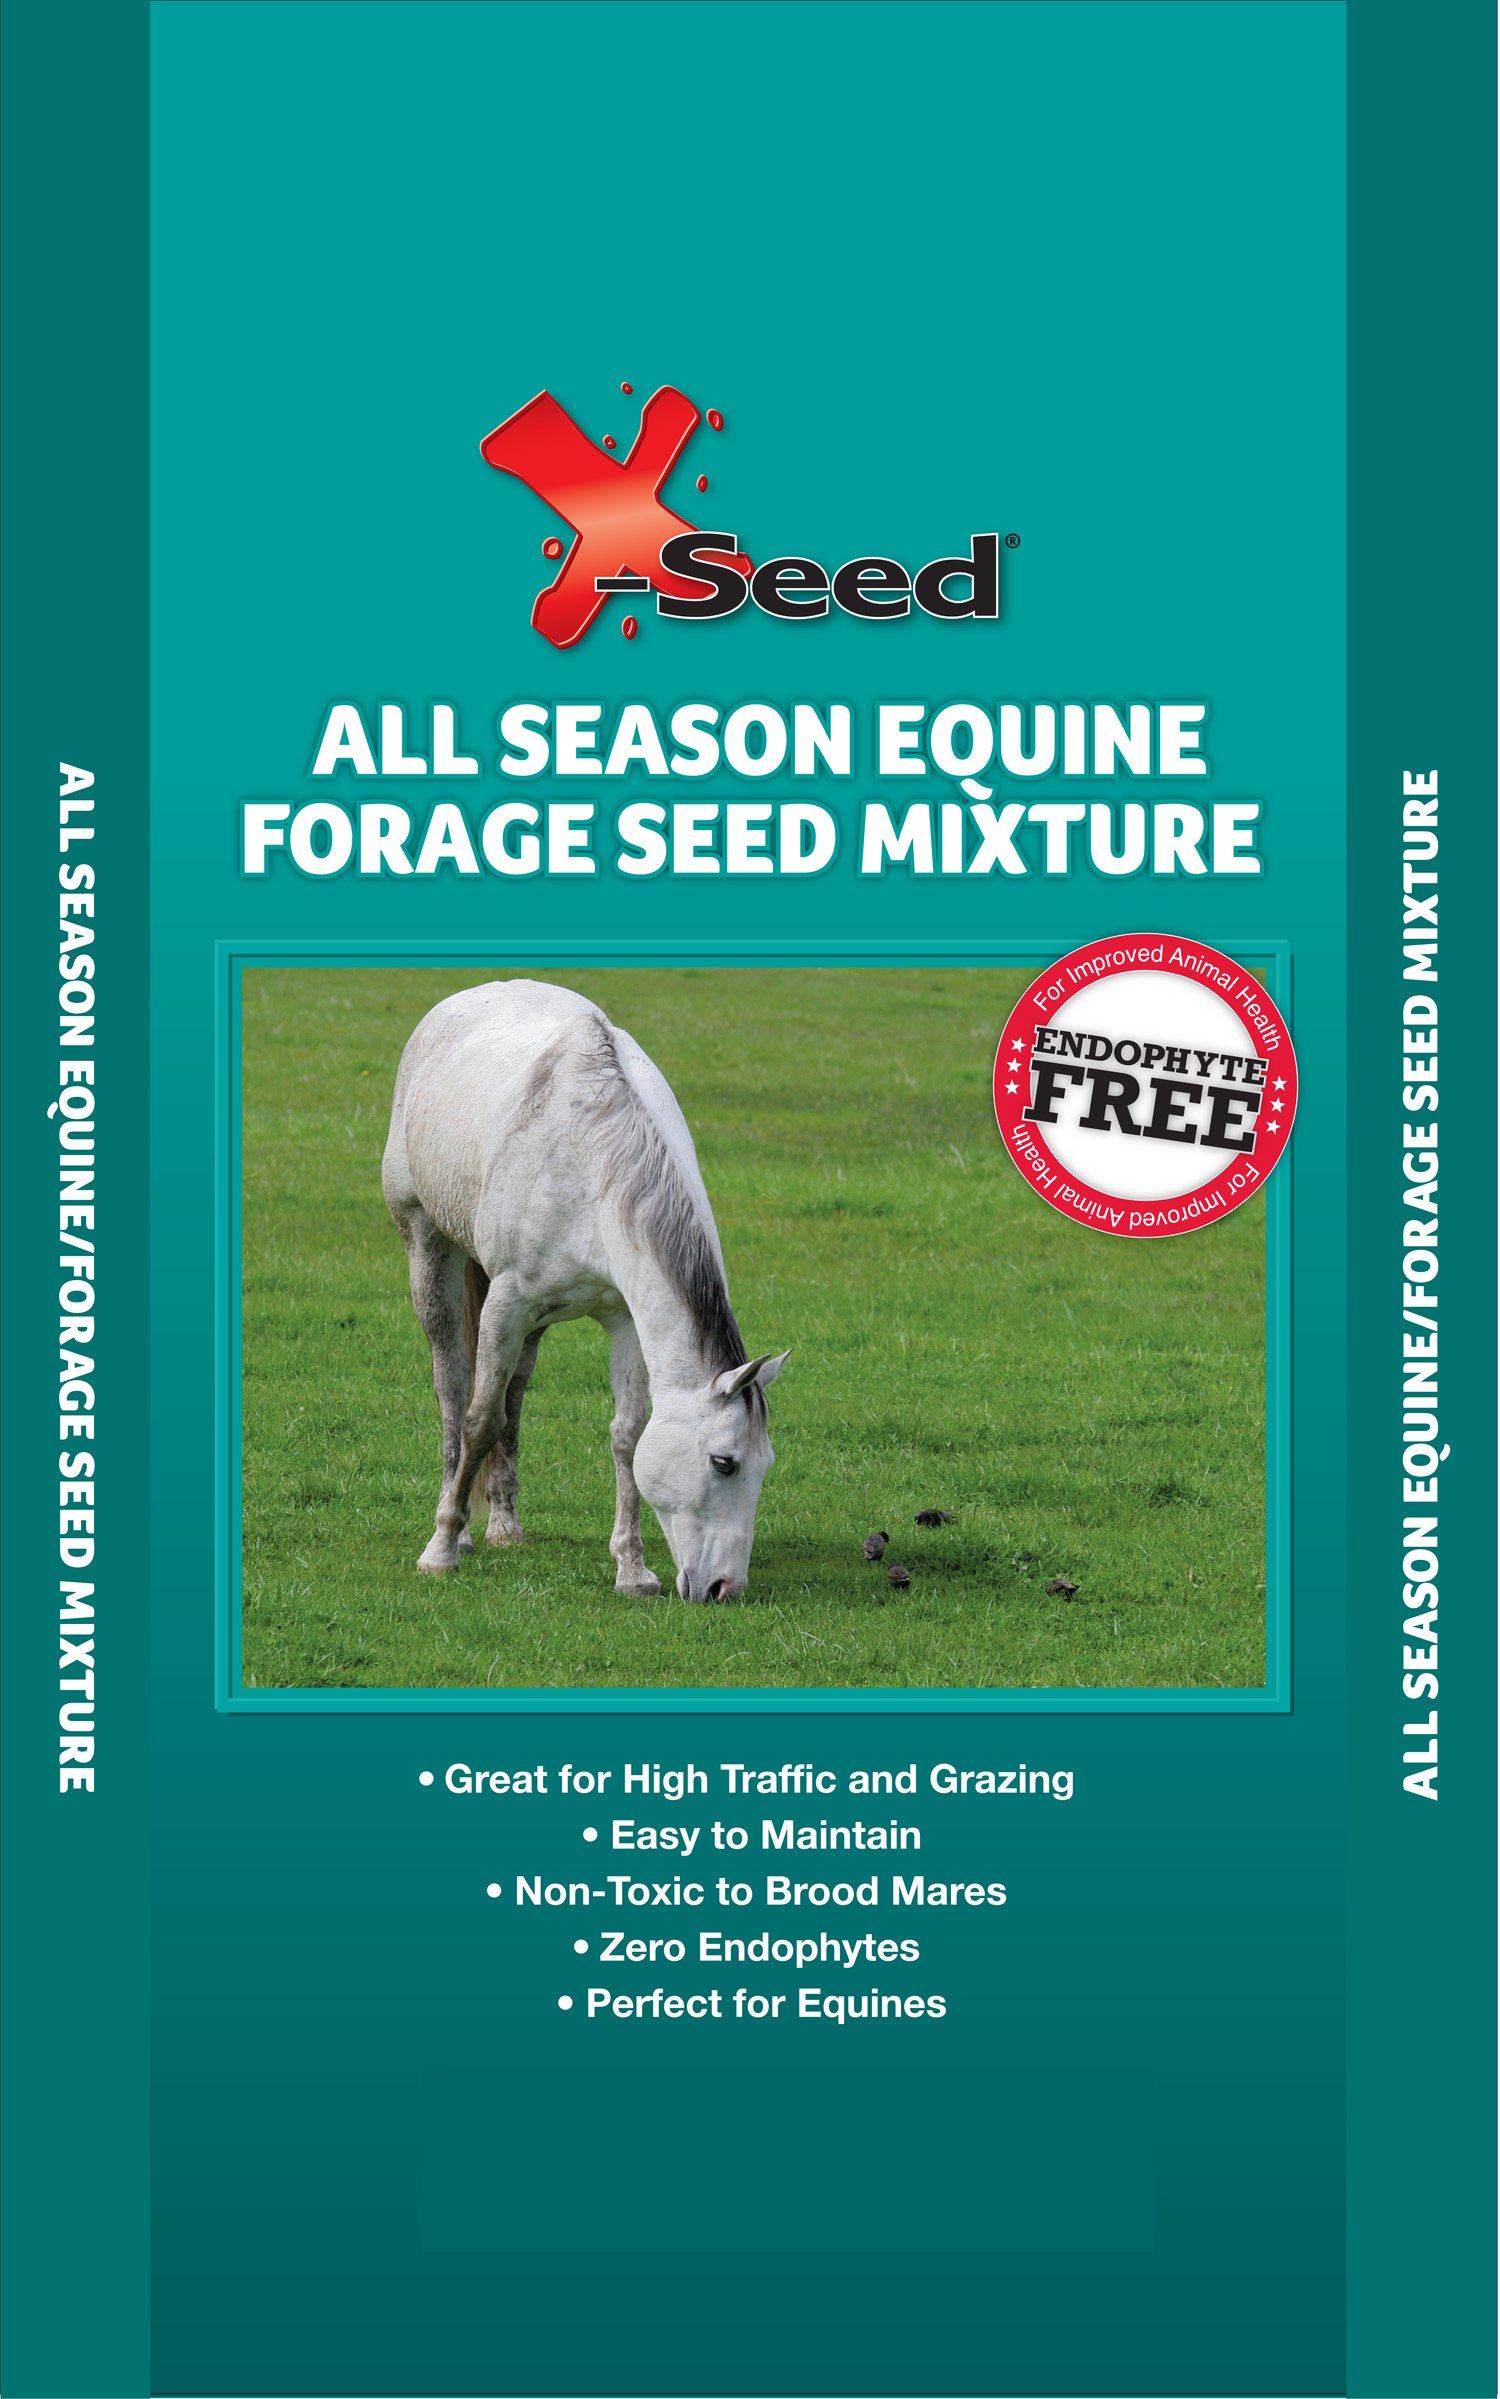 X-Seed 20095 Ultra Premium All Stock Pasture Forage Mixture